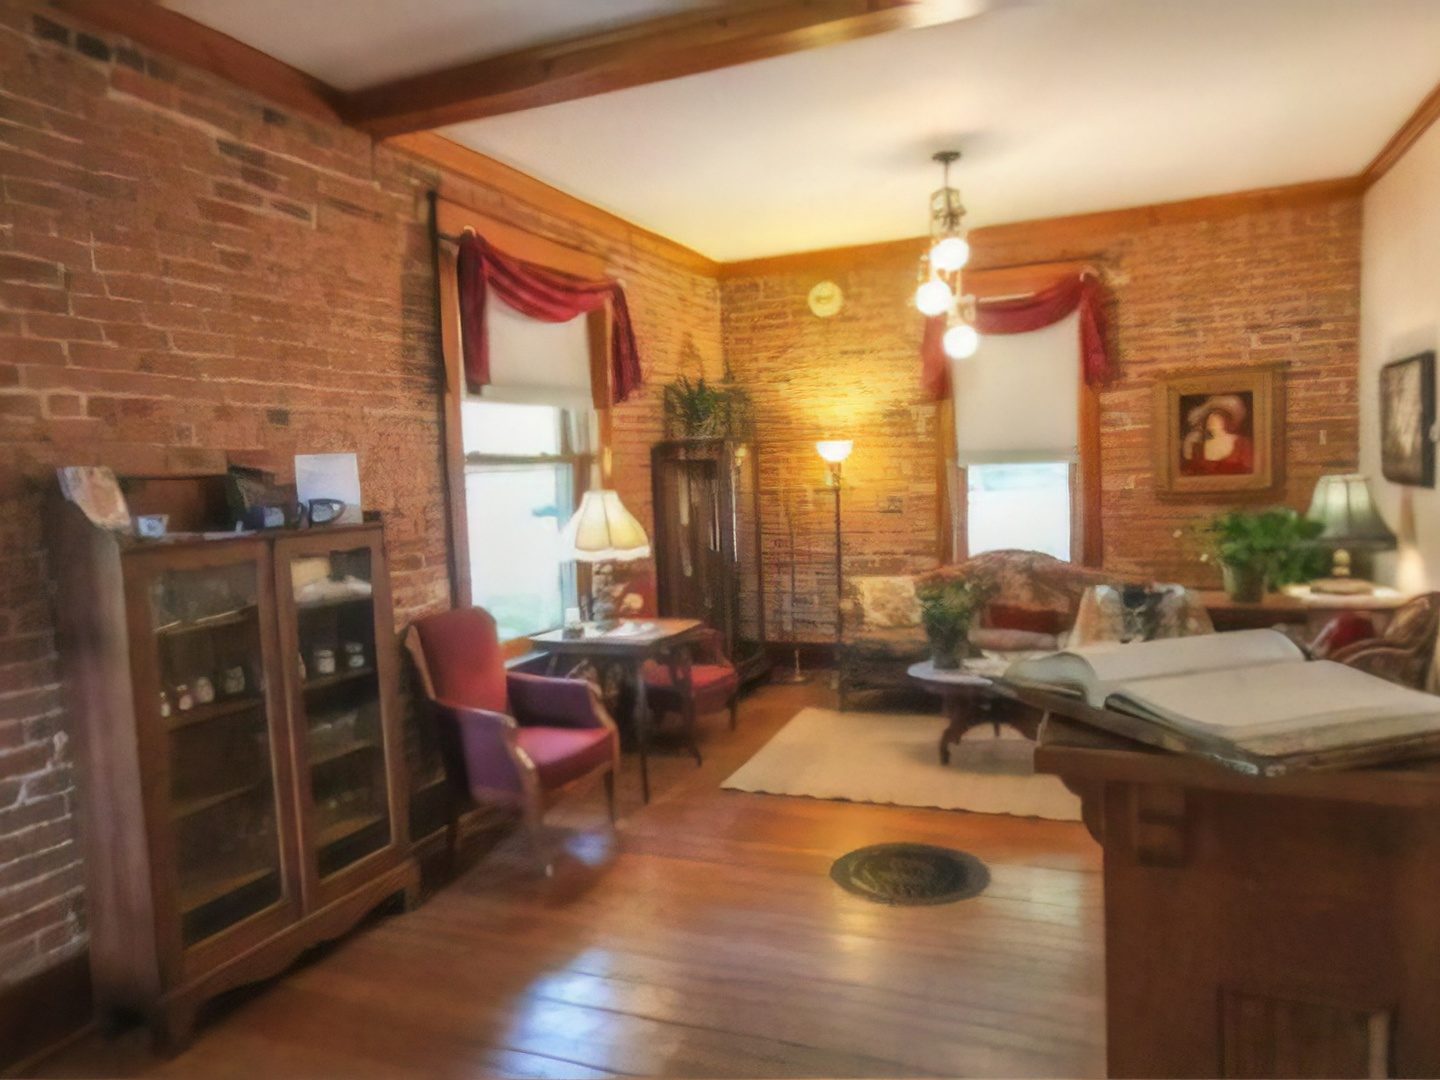 A living room filled with furniture and a fire place at Bross Hotel Bed & Breakfast.